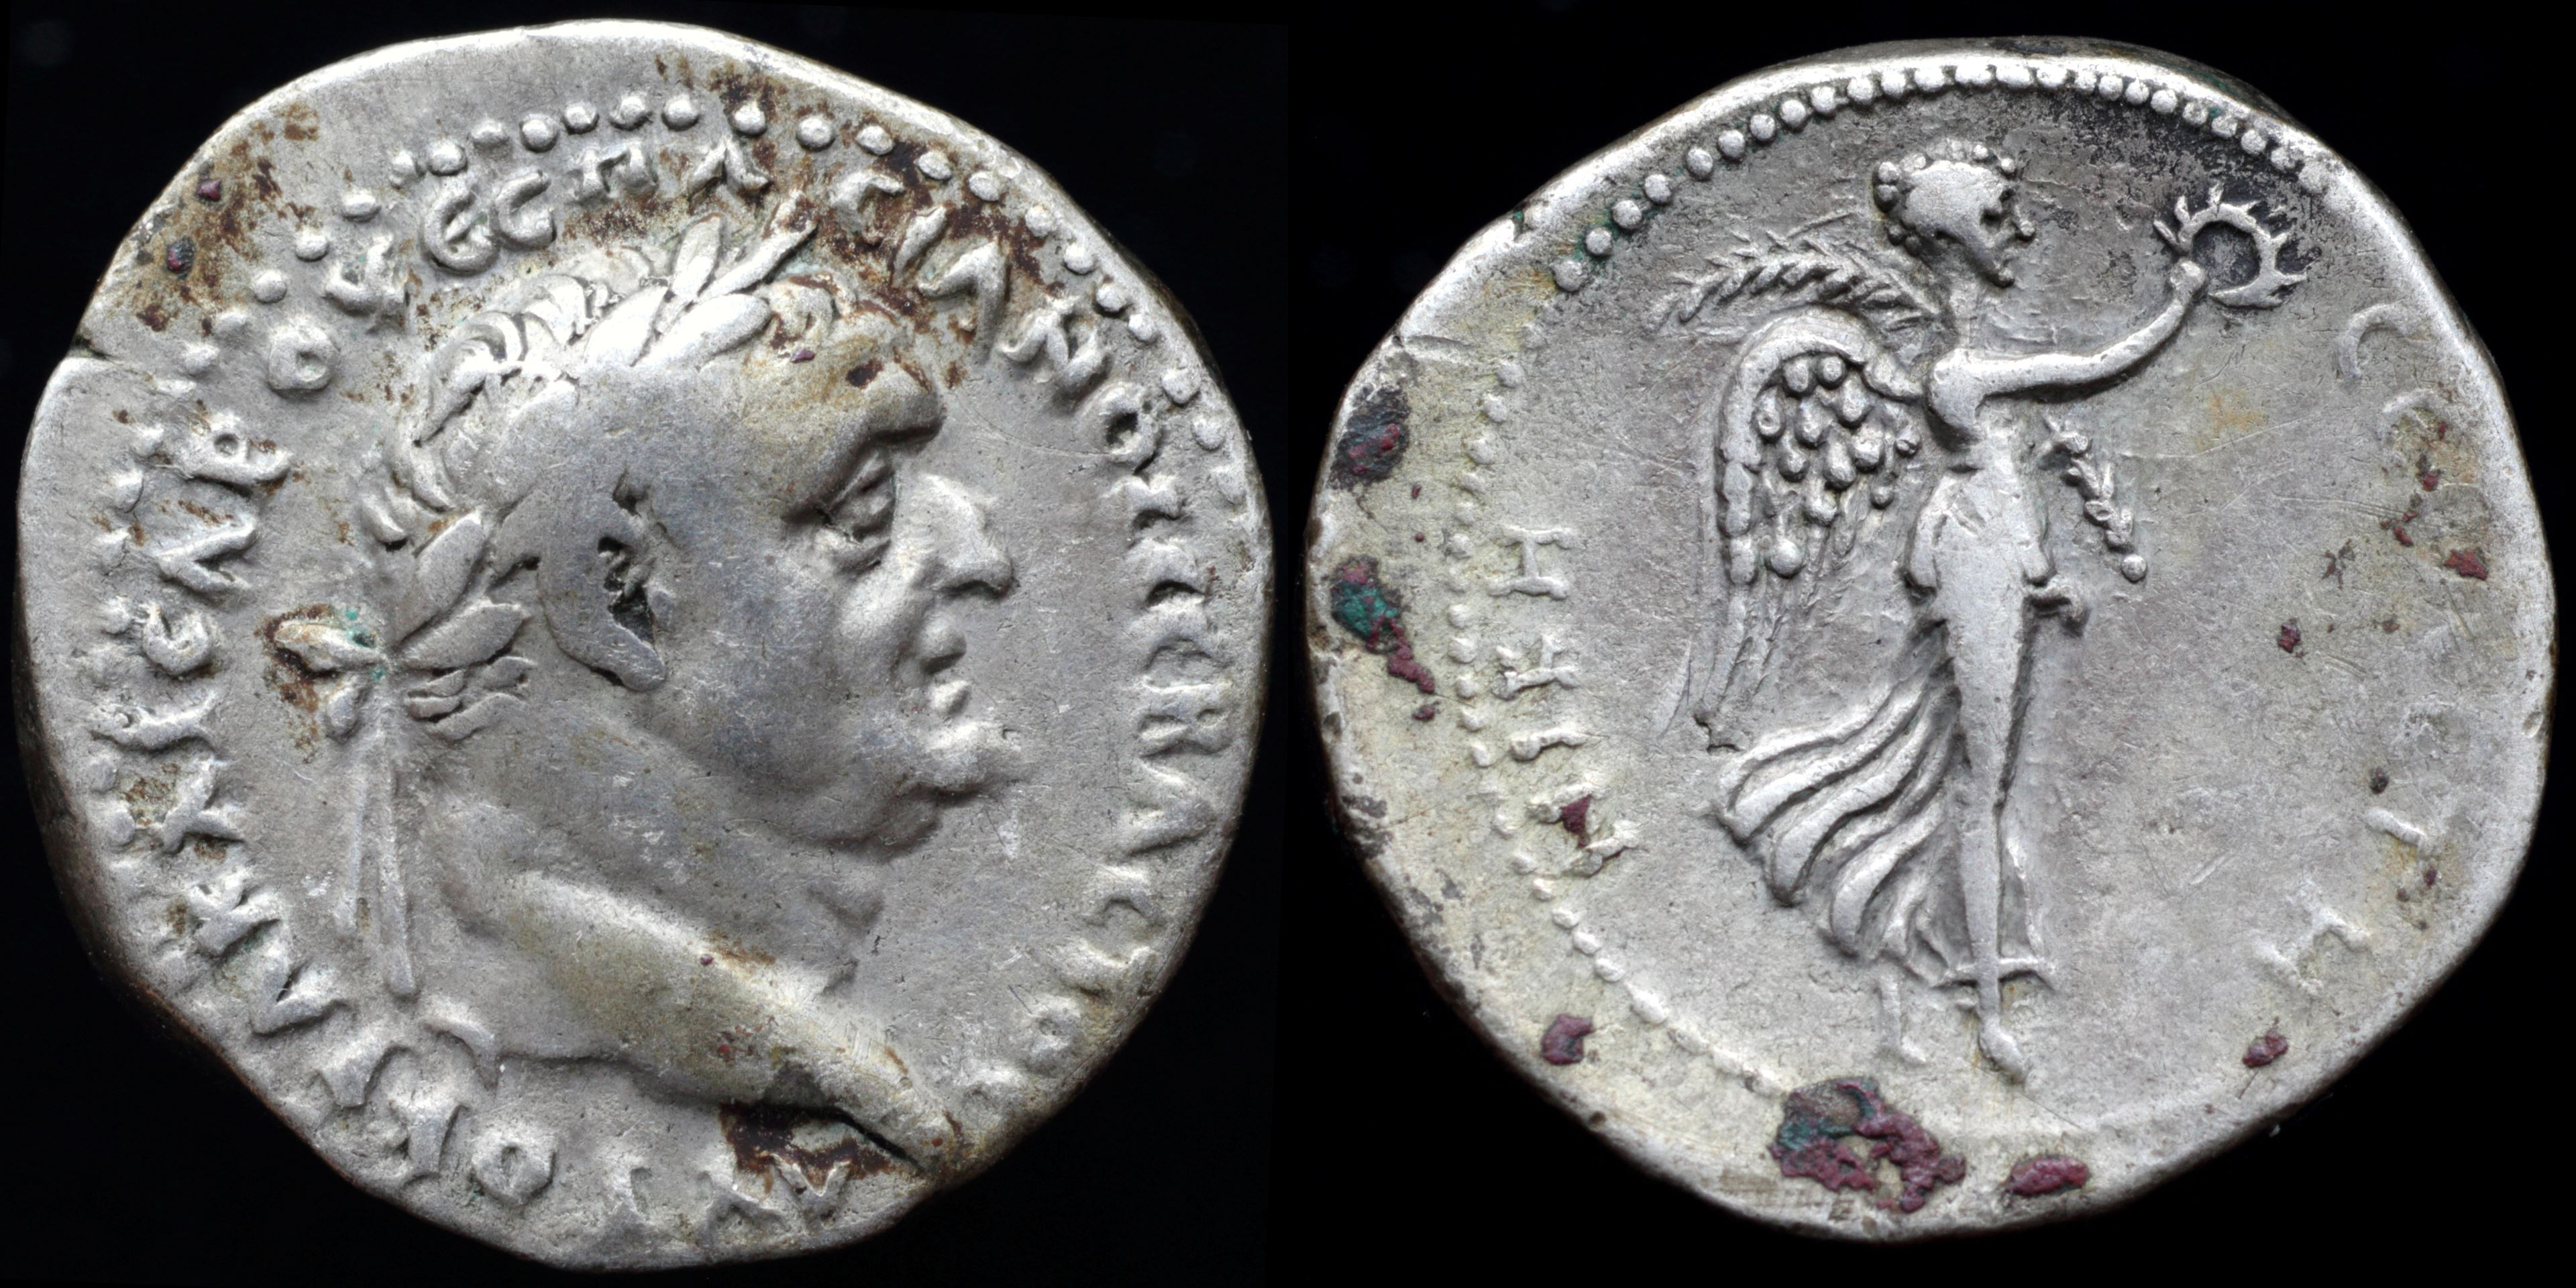 /Files/Images/Coinsite/CoinDB/Vespasian_Caesarea_didra.jpg